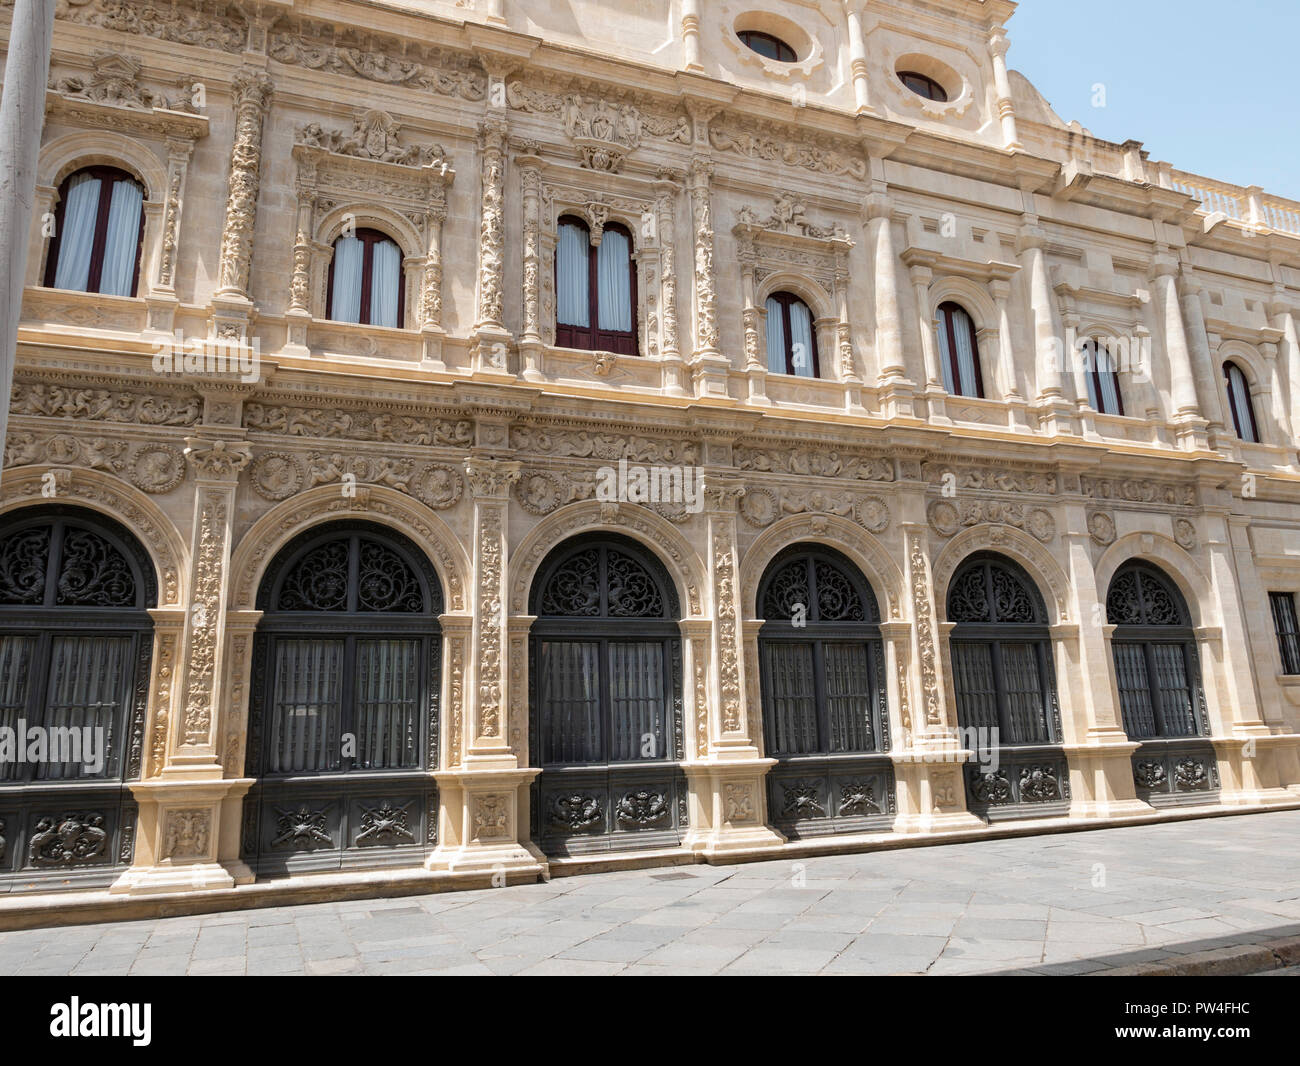 The Casa Consistorial of Seville (Seville City Hall) showing early decorated section and final plain section due to lack of money. Seville, Andalusia, Stock Photo